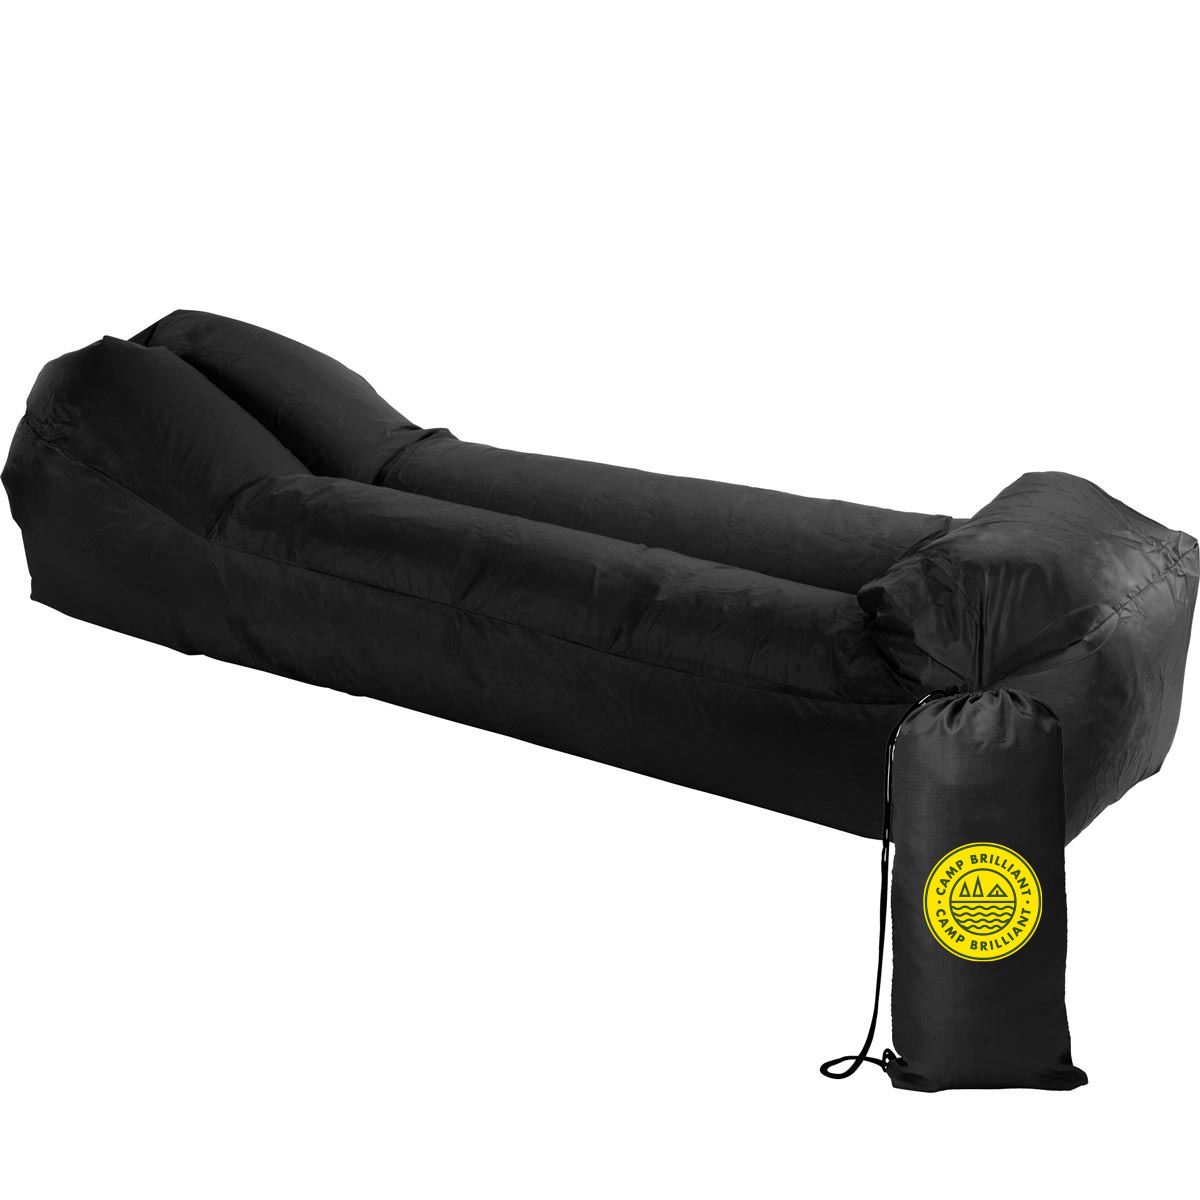 229131 easy inflate lounger two color one location imprint